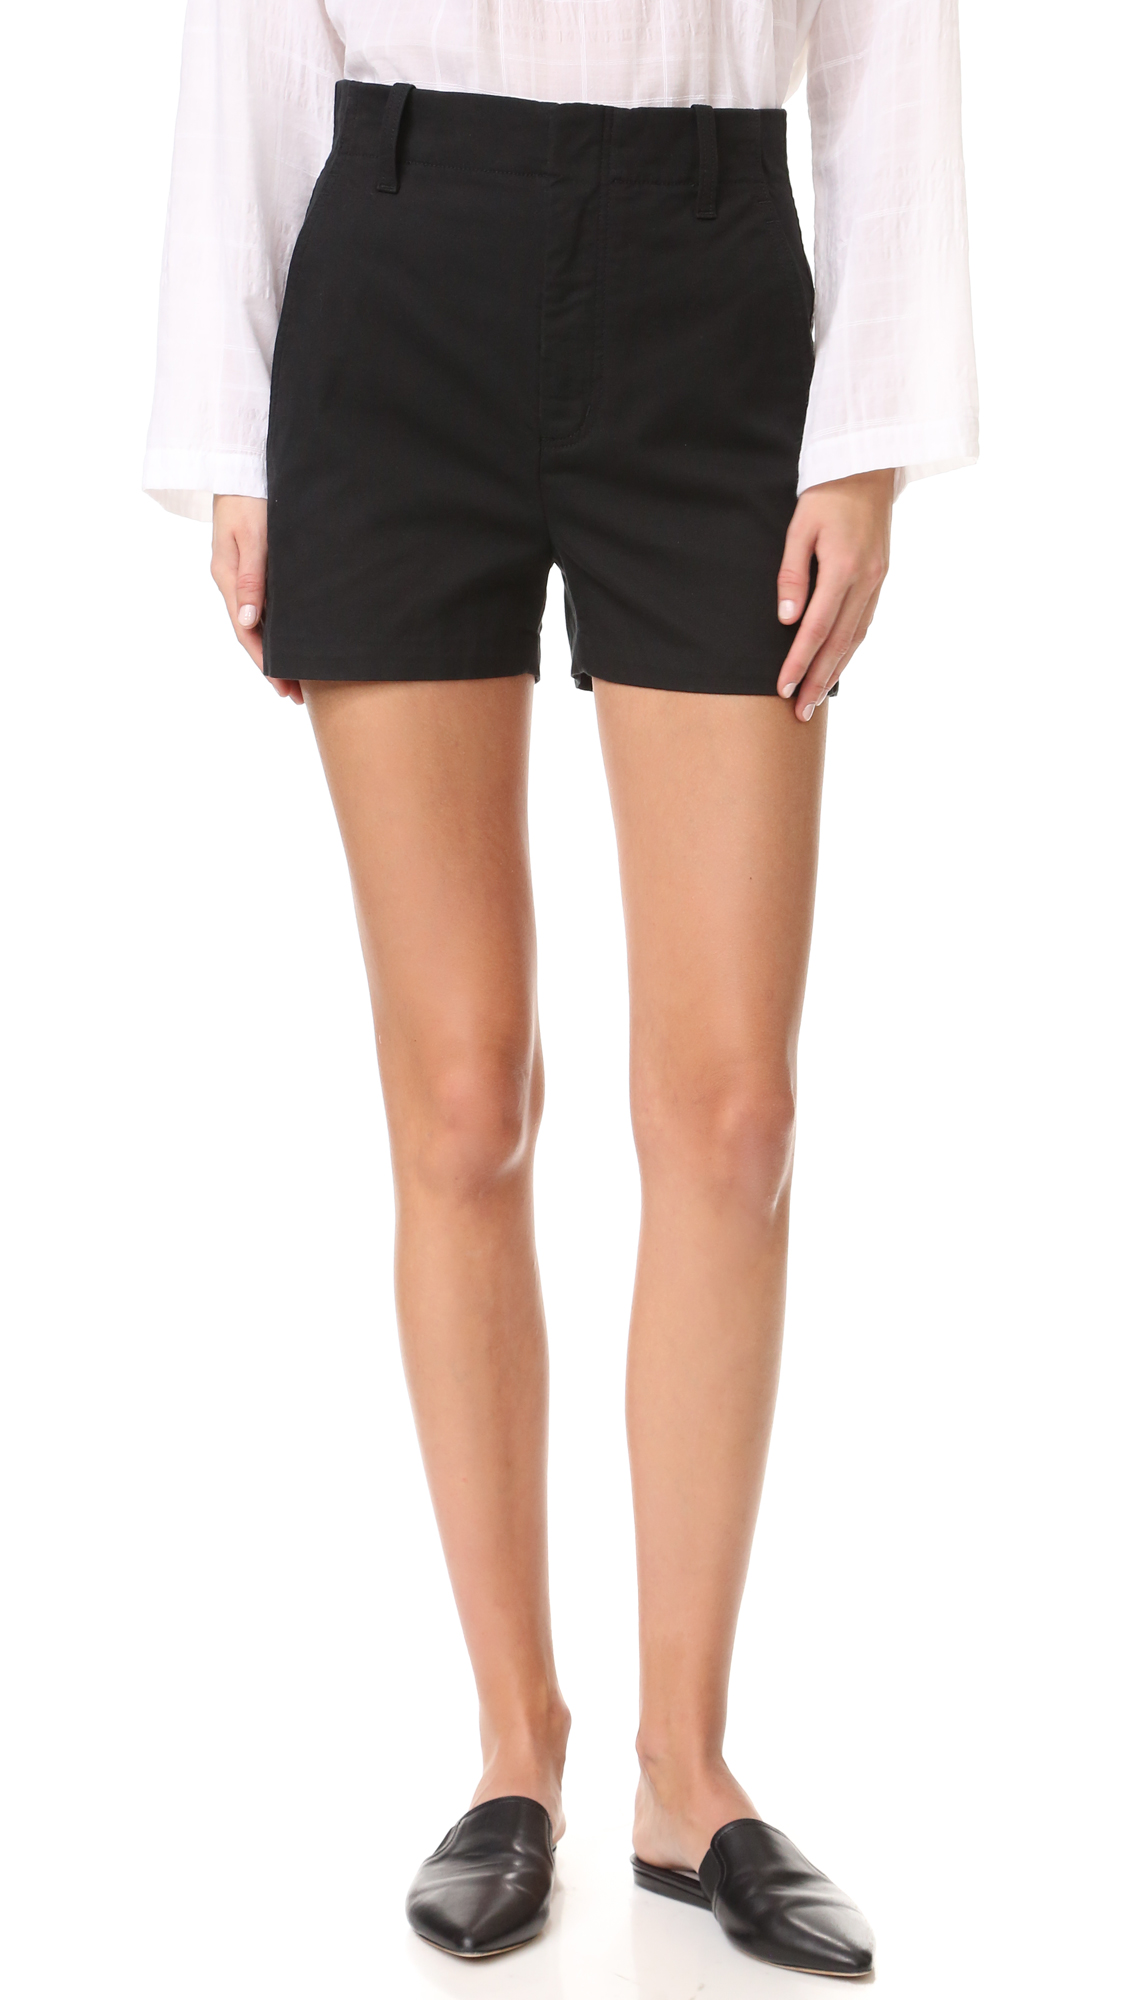 Vince High Waist Shorts - Black at Shopbop